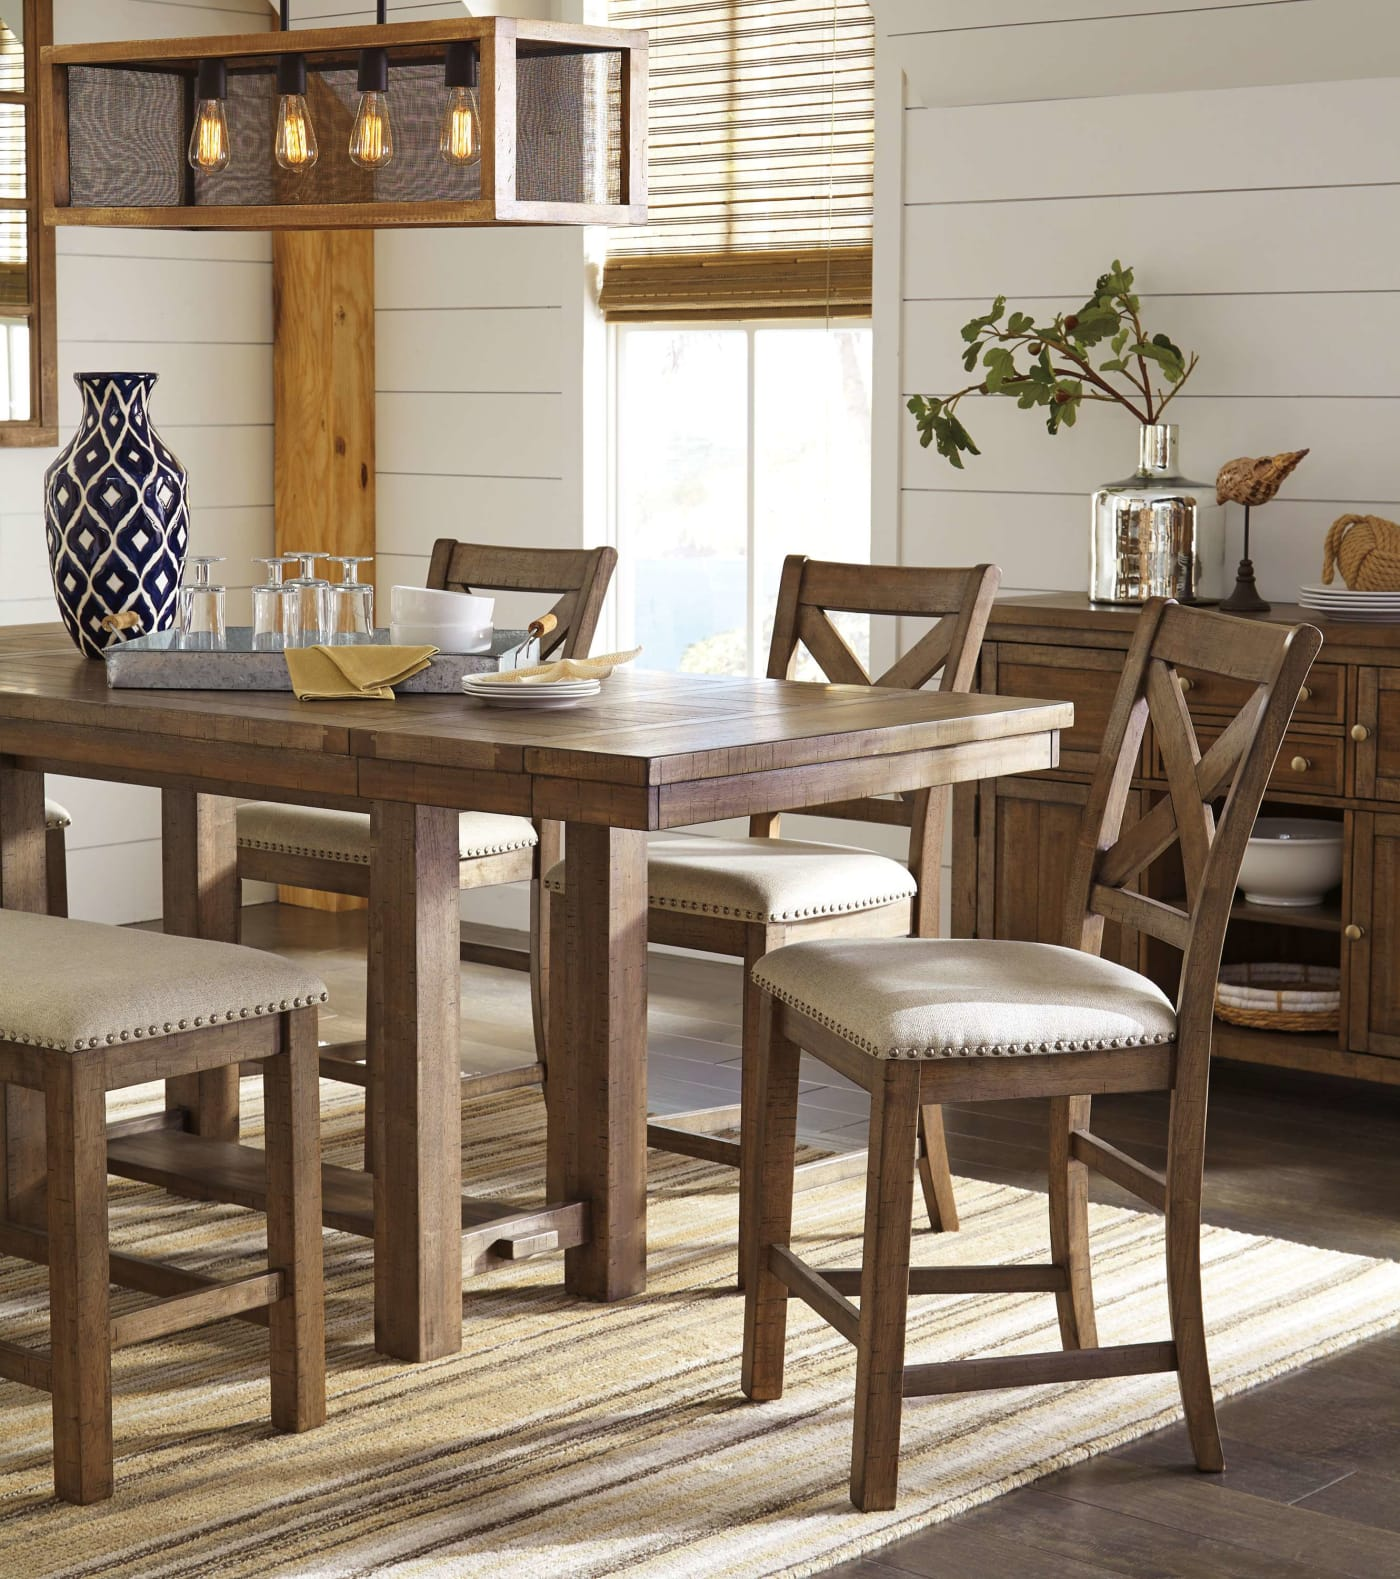 Costco Dining Room Table and Chairs